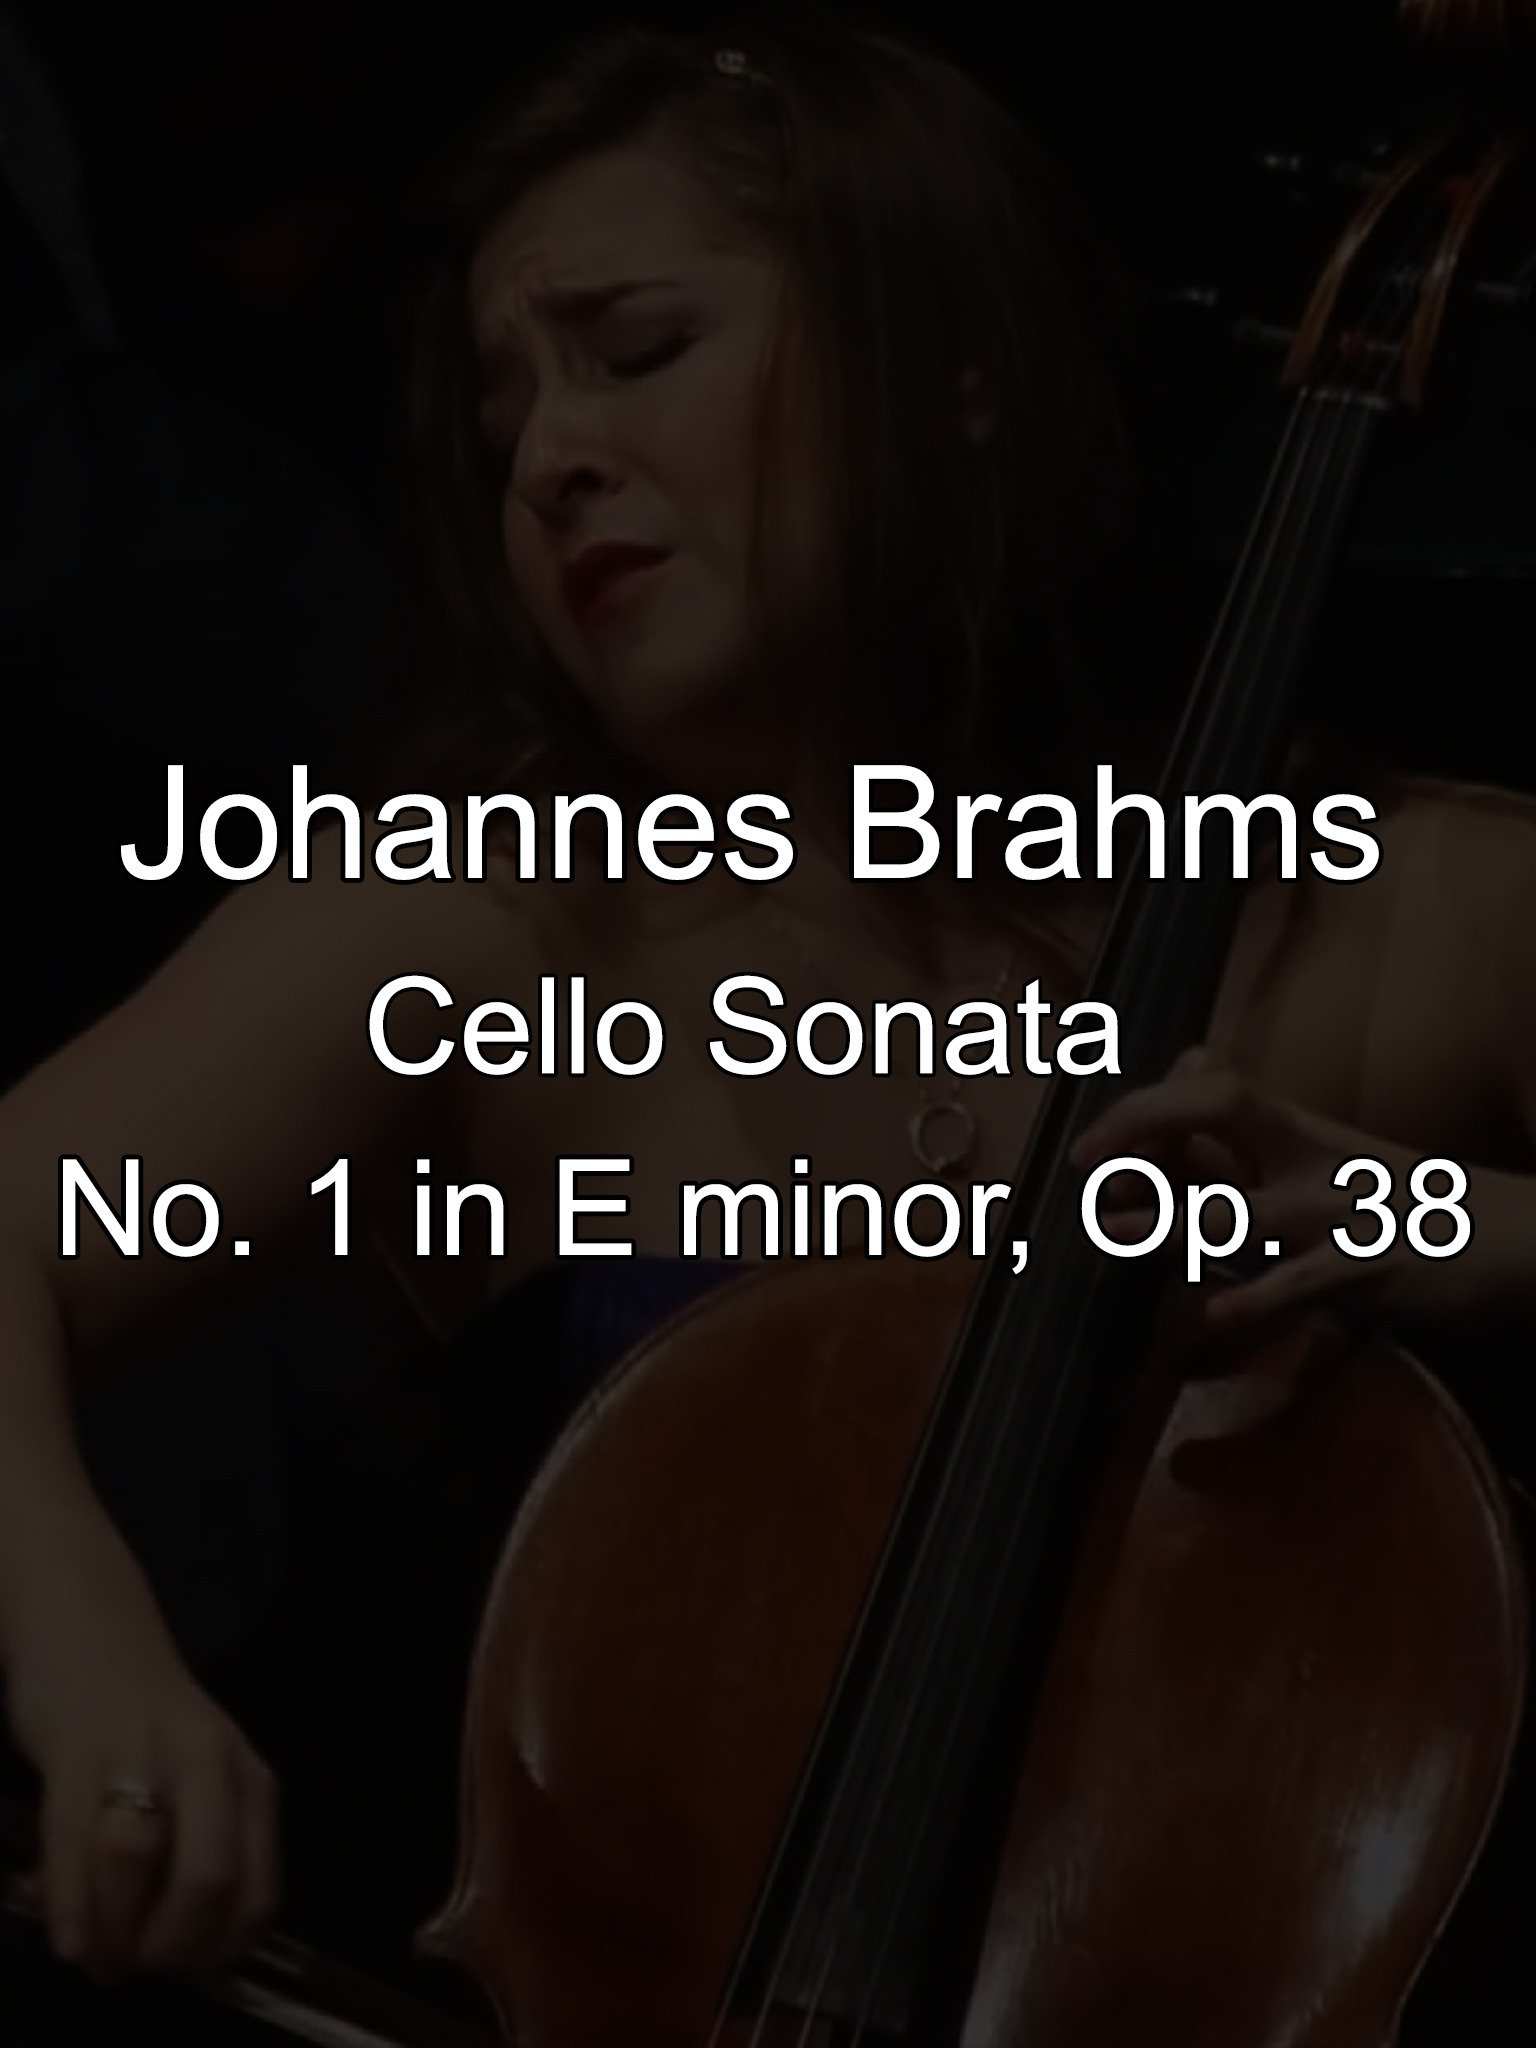 Cello Sonata No. 1 in E minor, Op. 38 by Johannes Brahms